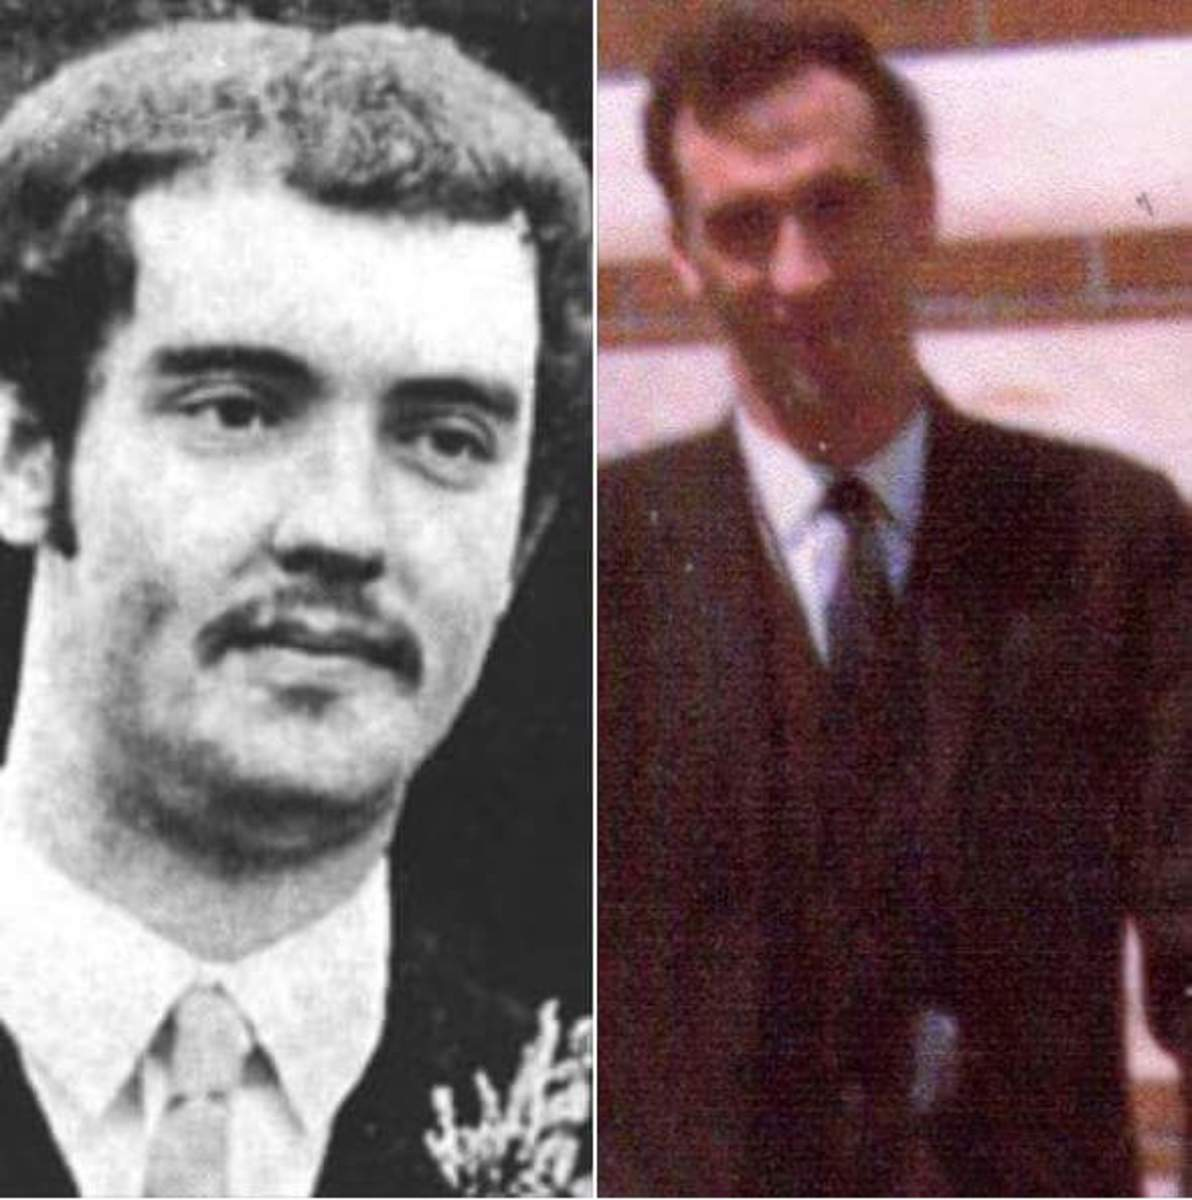 Ronnie Bunting and Noel Little, comrades assassinated by a pro-British death squad.